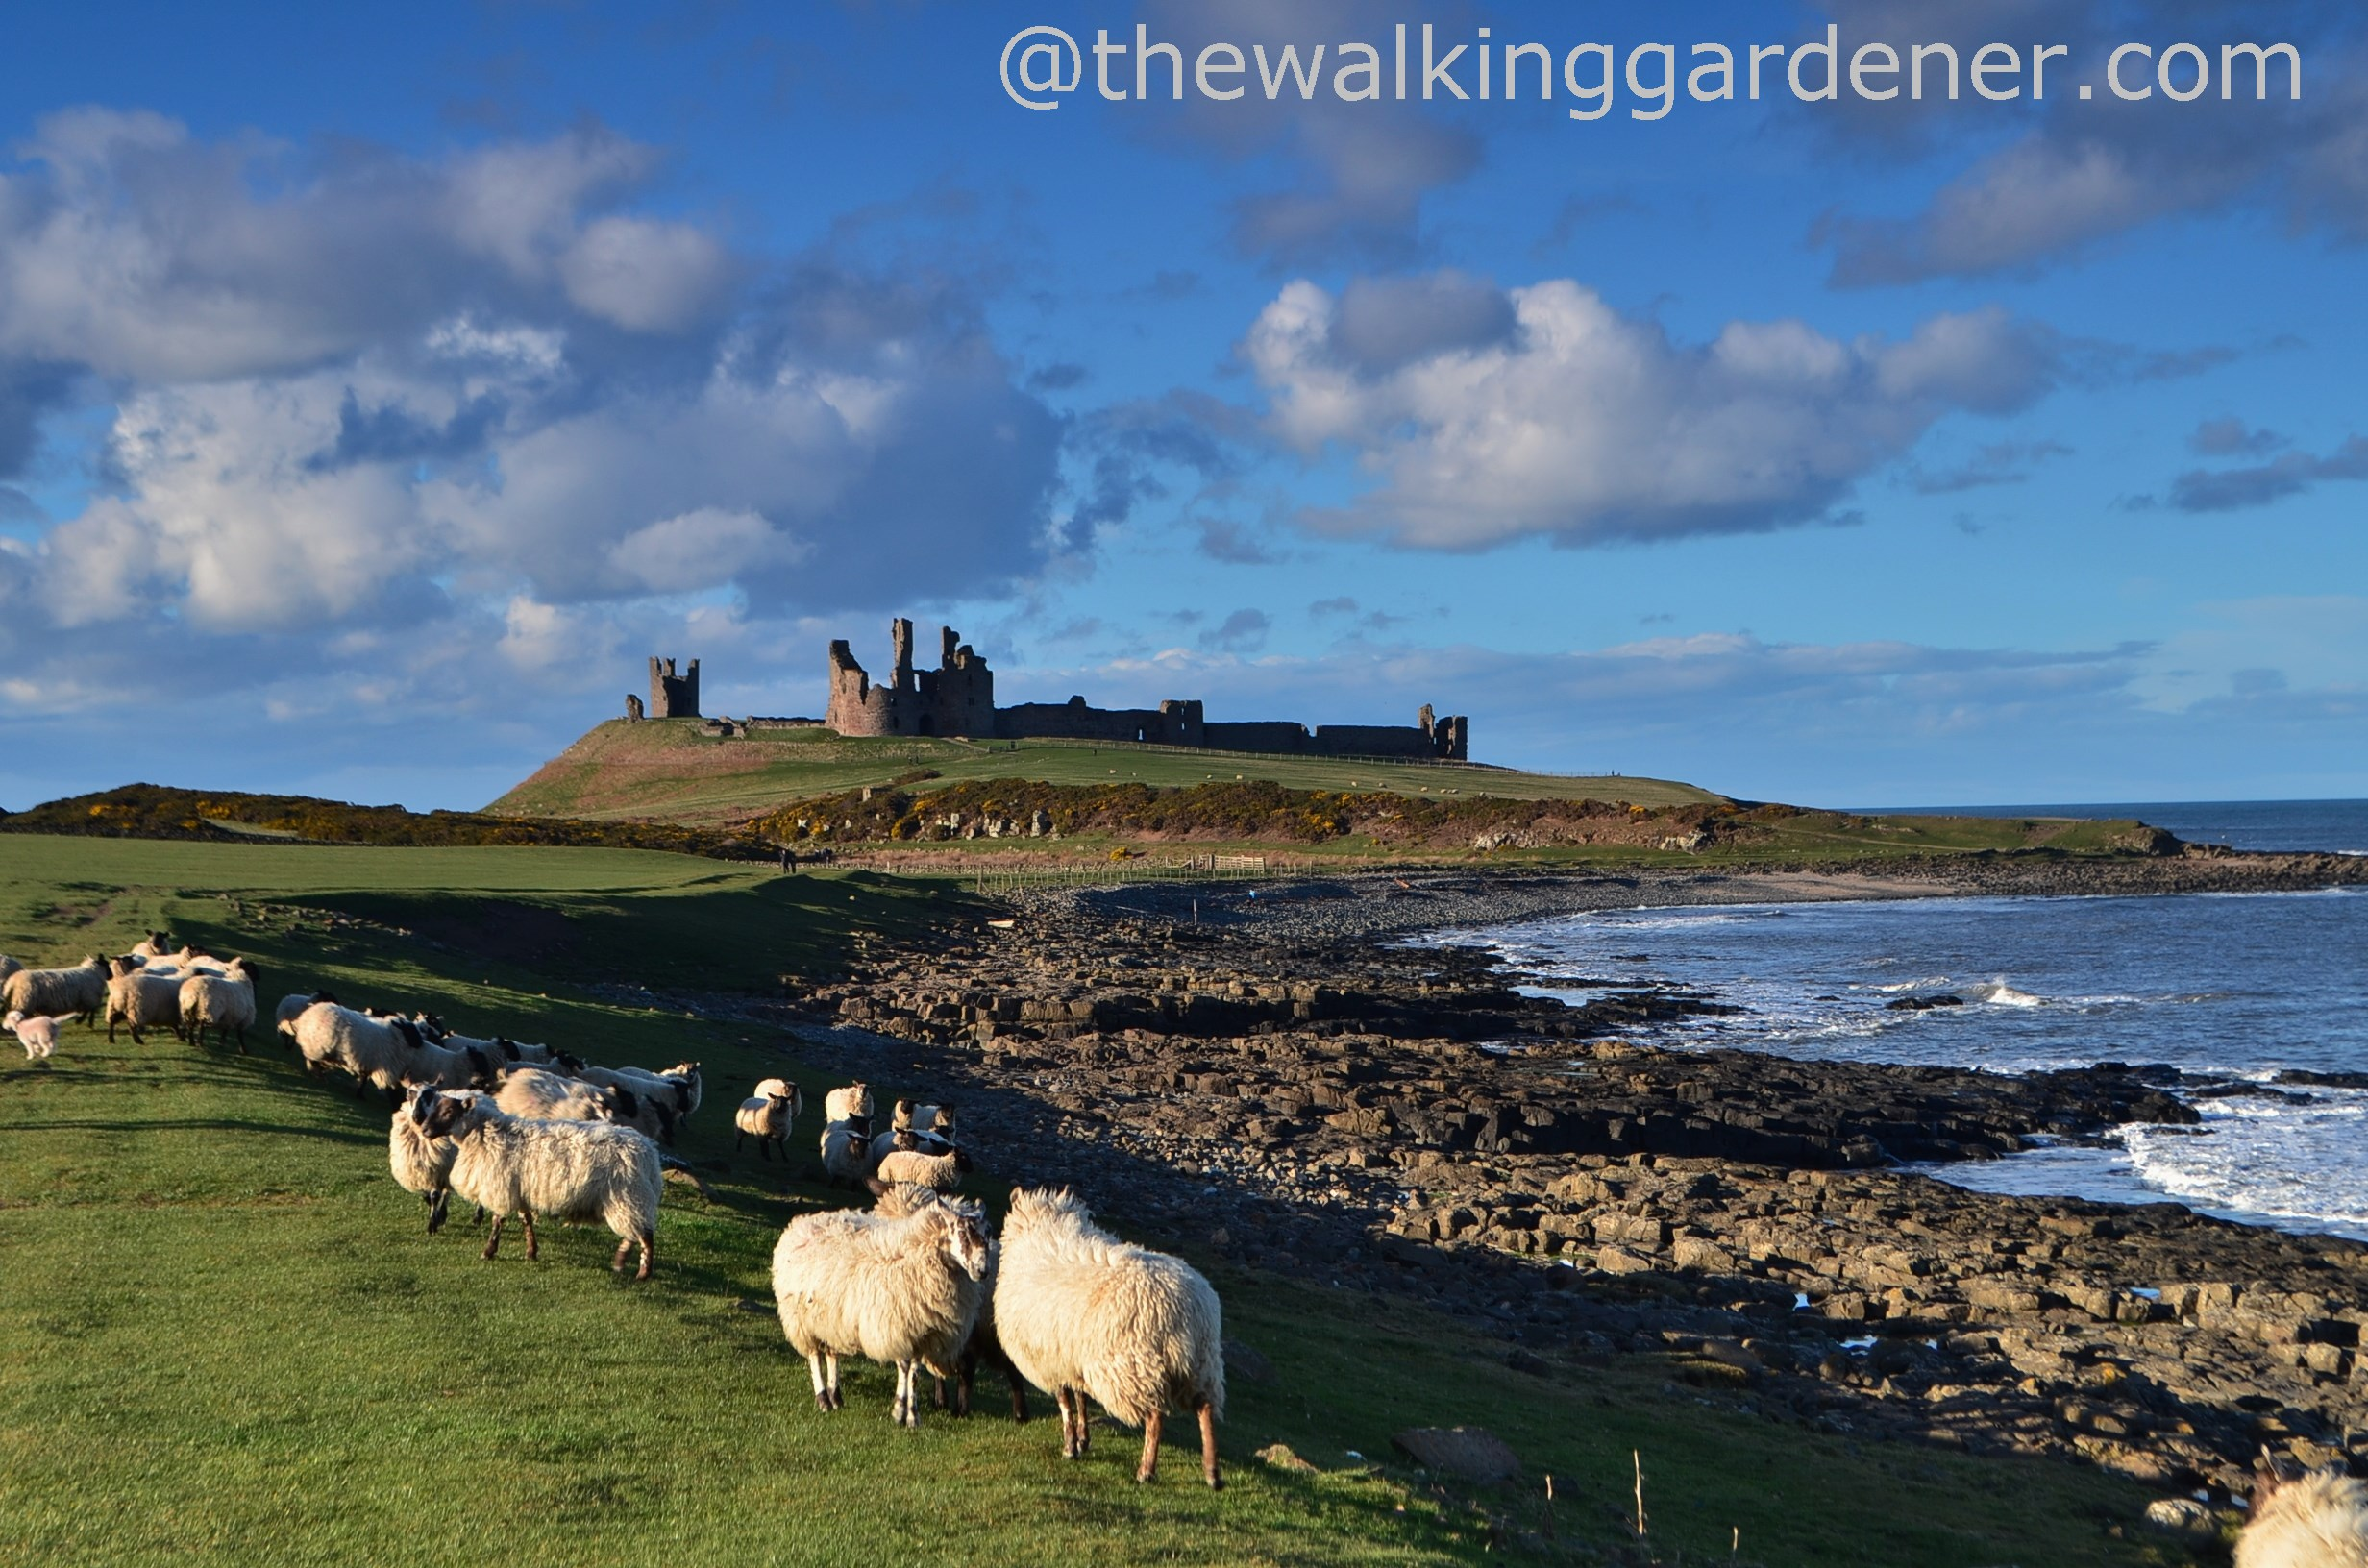 St Oswald's Way: Day 4 – Warkworth to Embleton